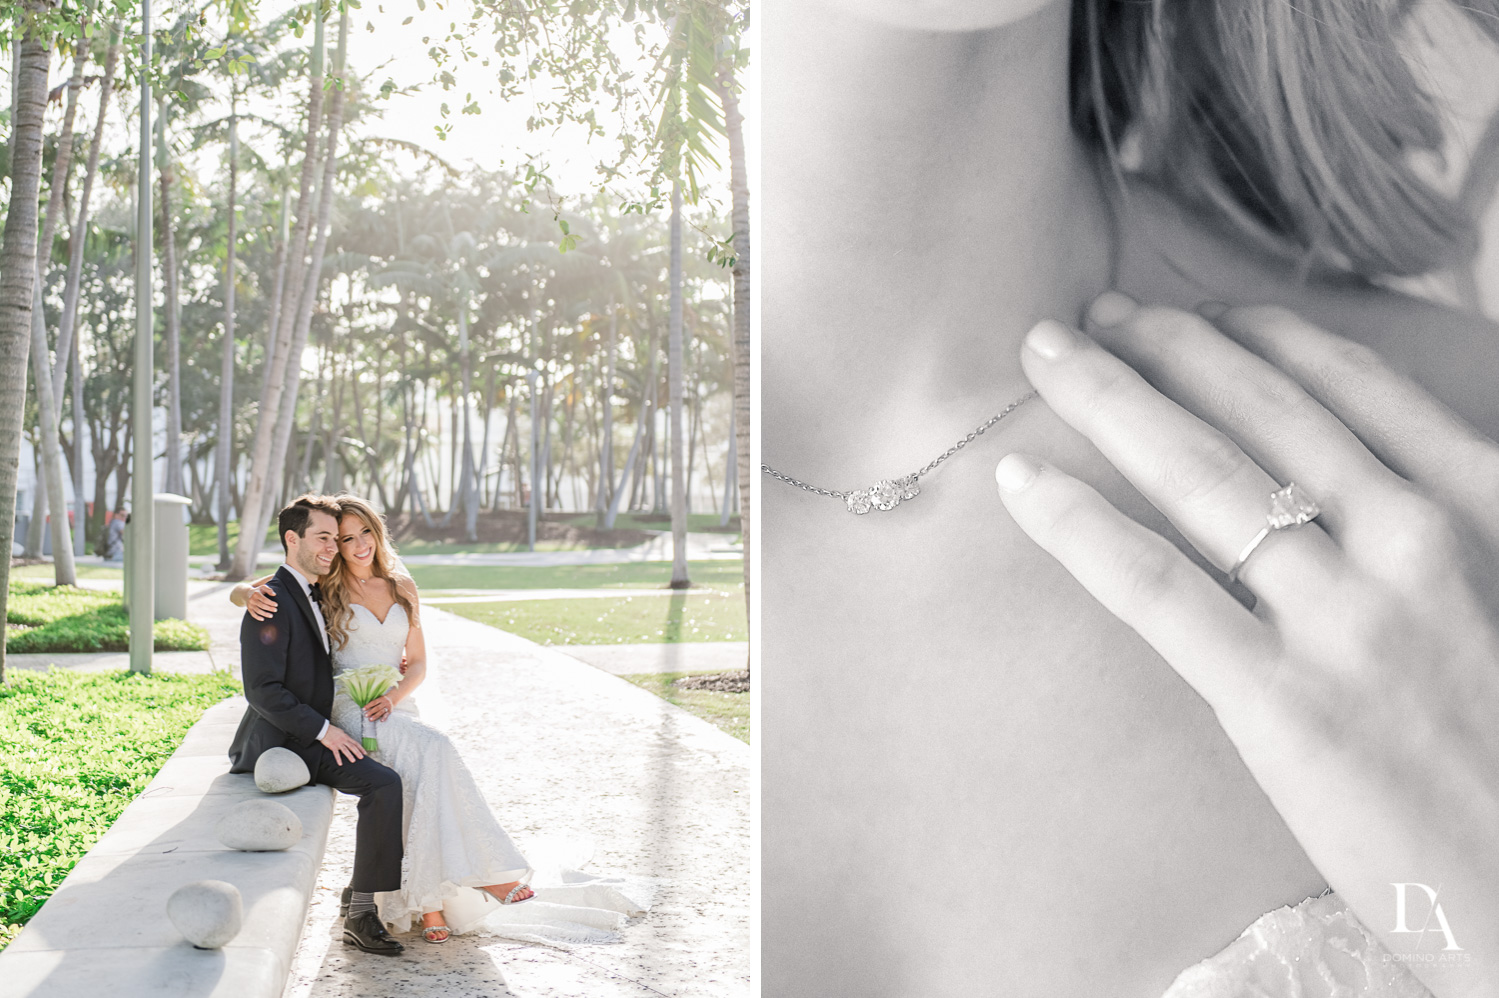 details and couple at Tropical Luxury Wedding at Temple Emmanu-El in Miami Beach